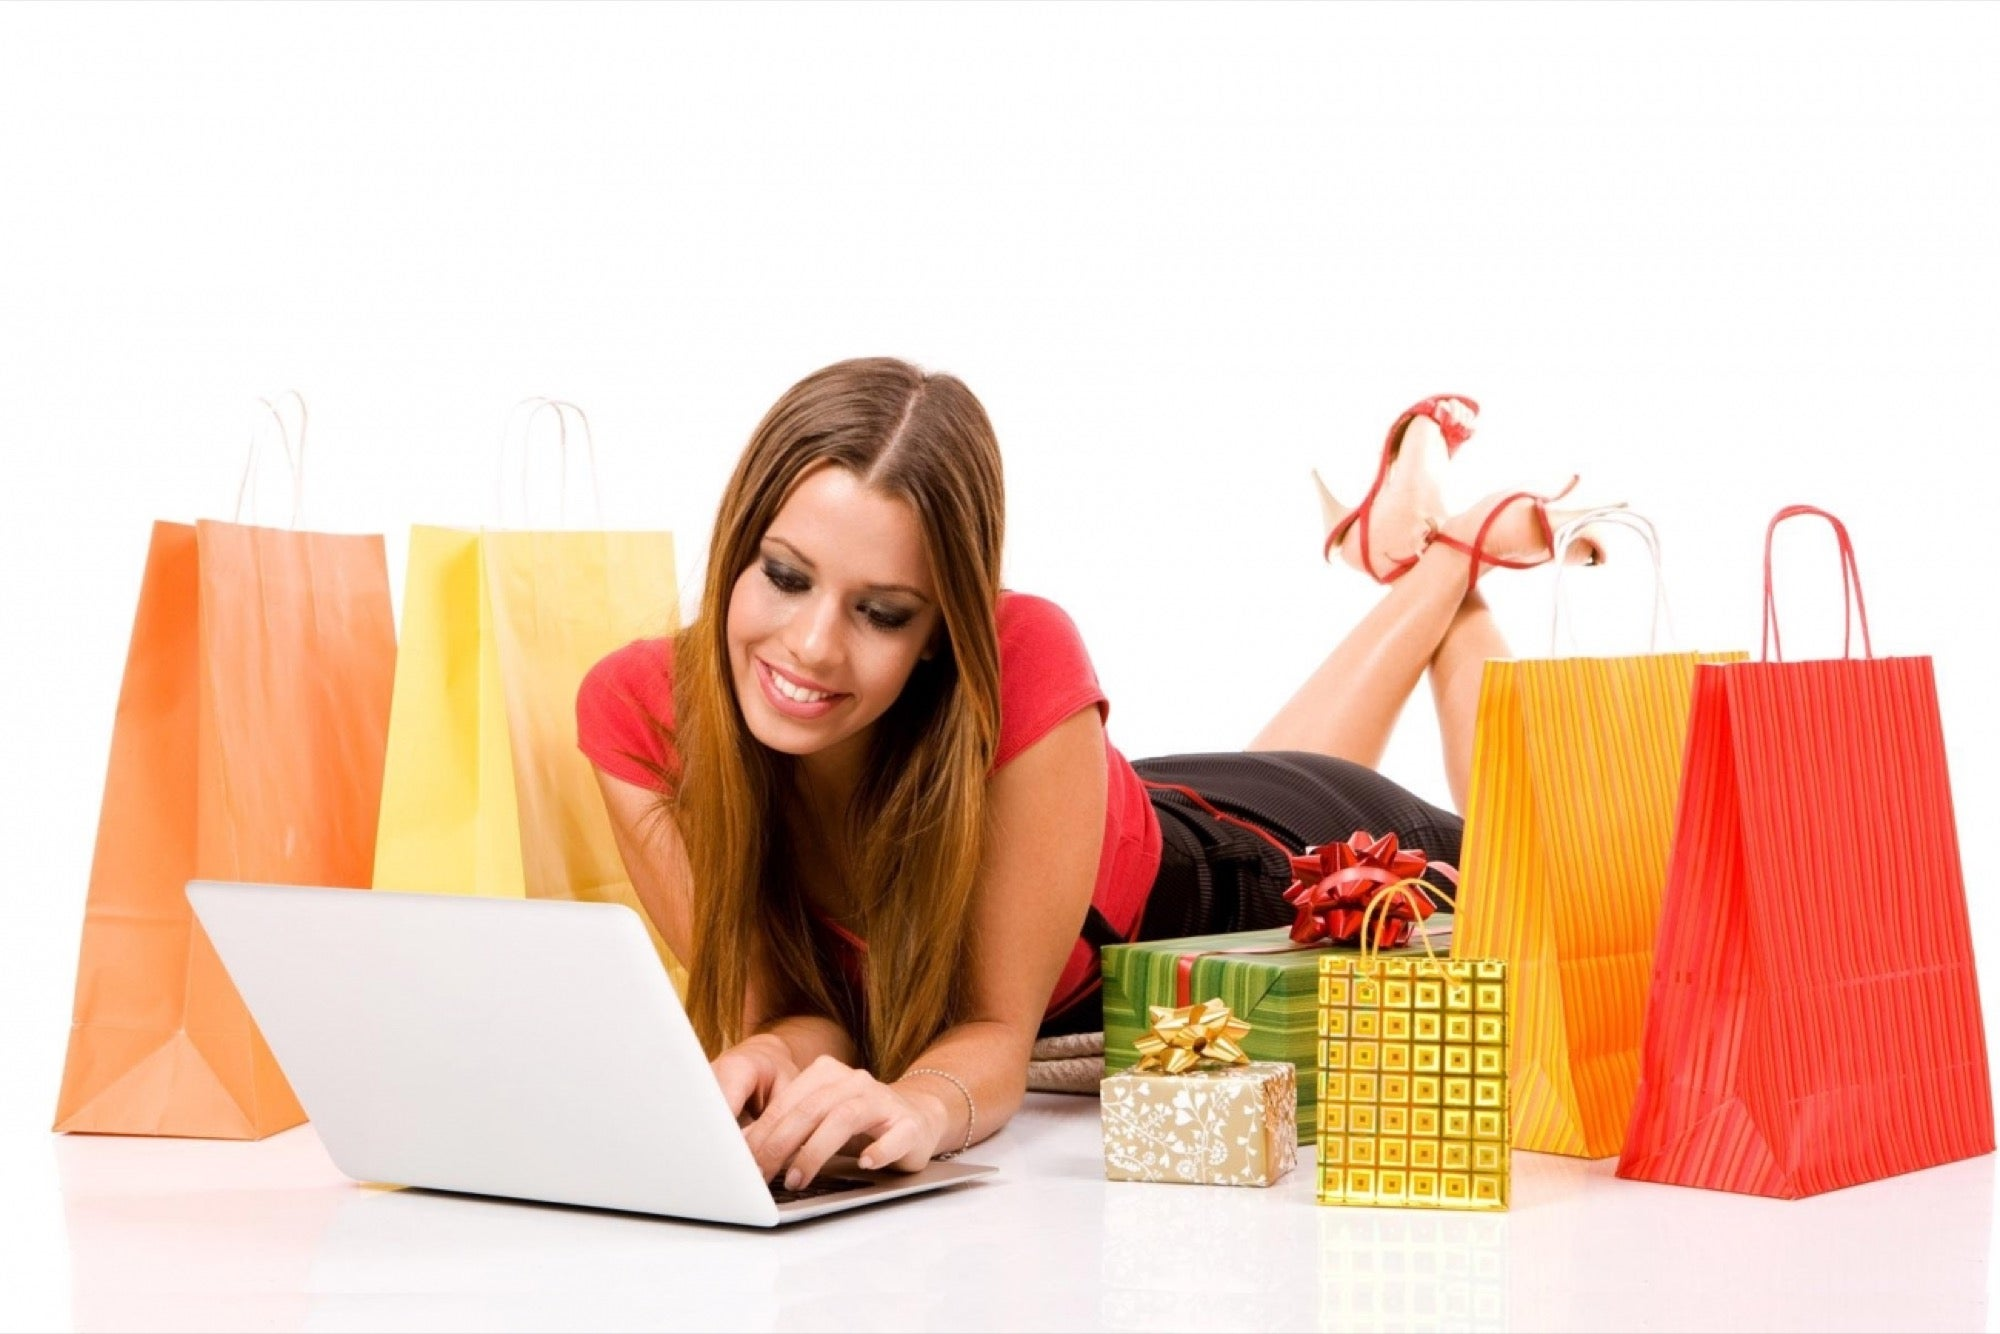 Shopping online - Making use of online stores to get the best deals